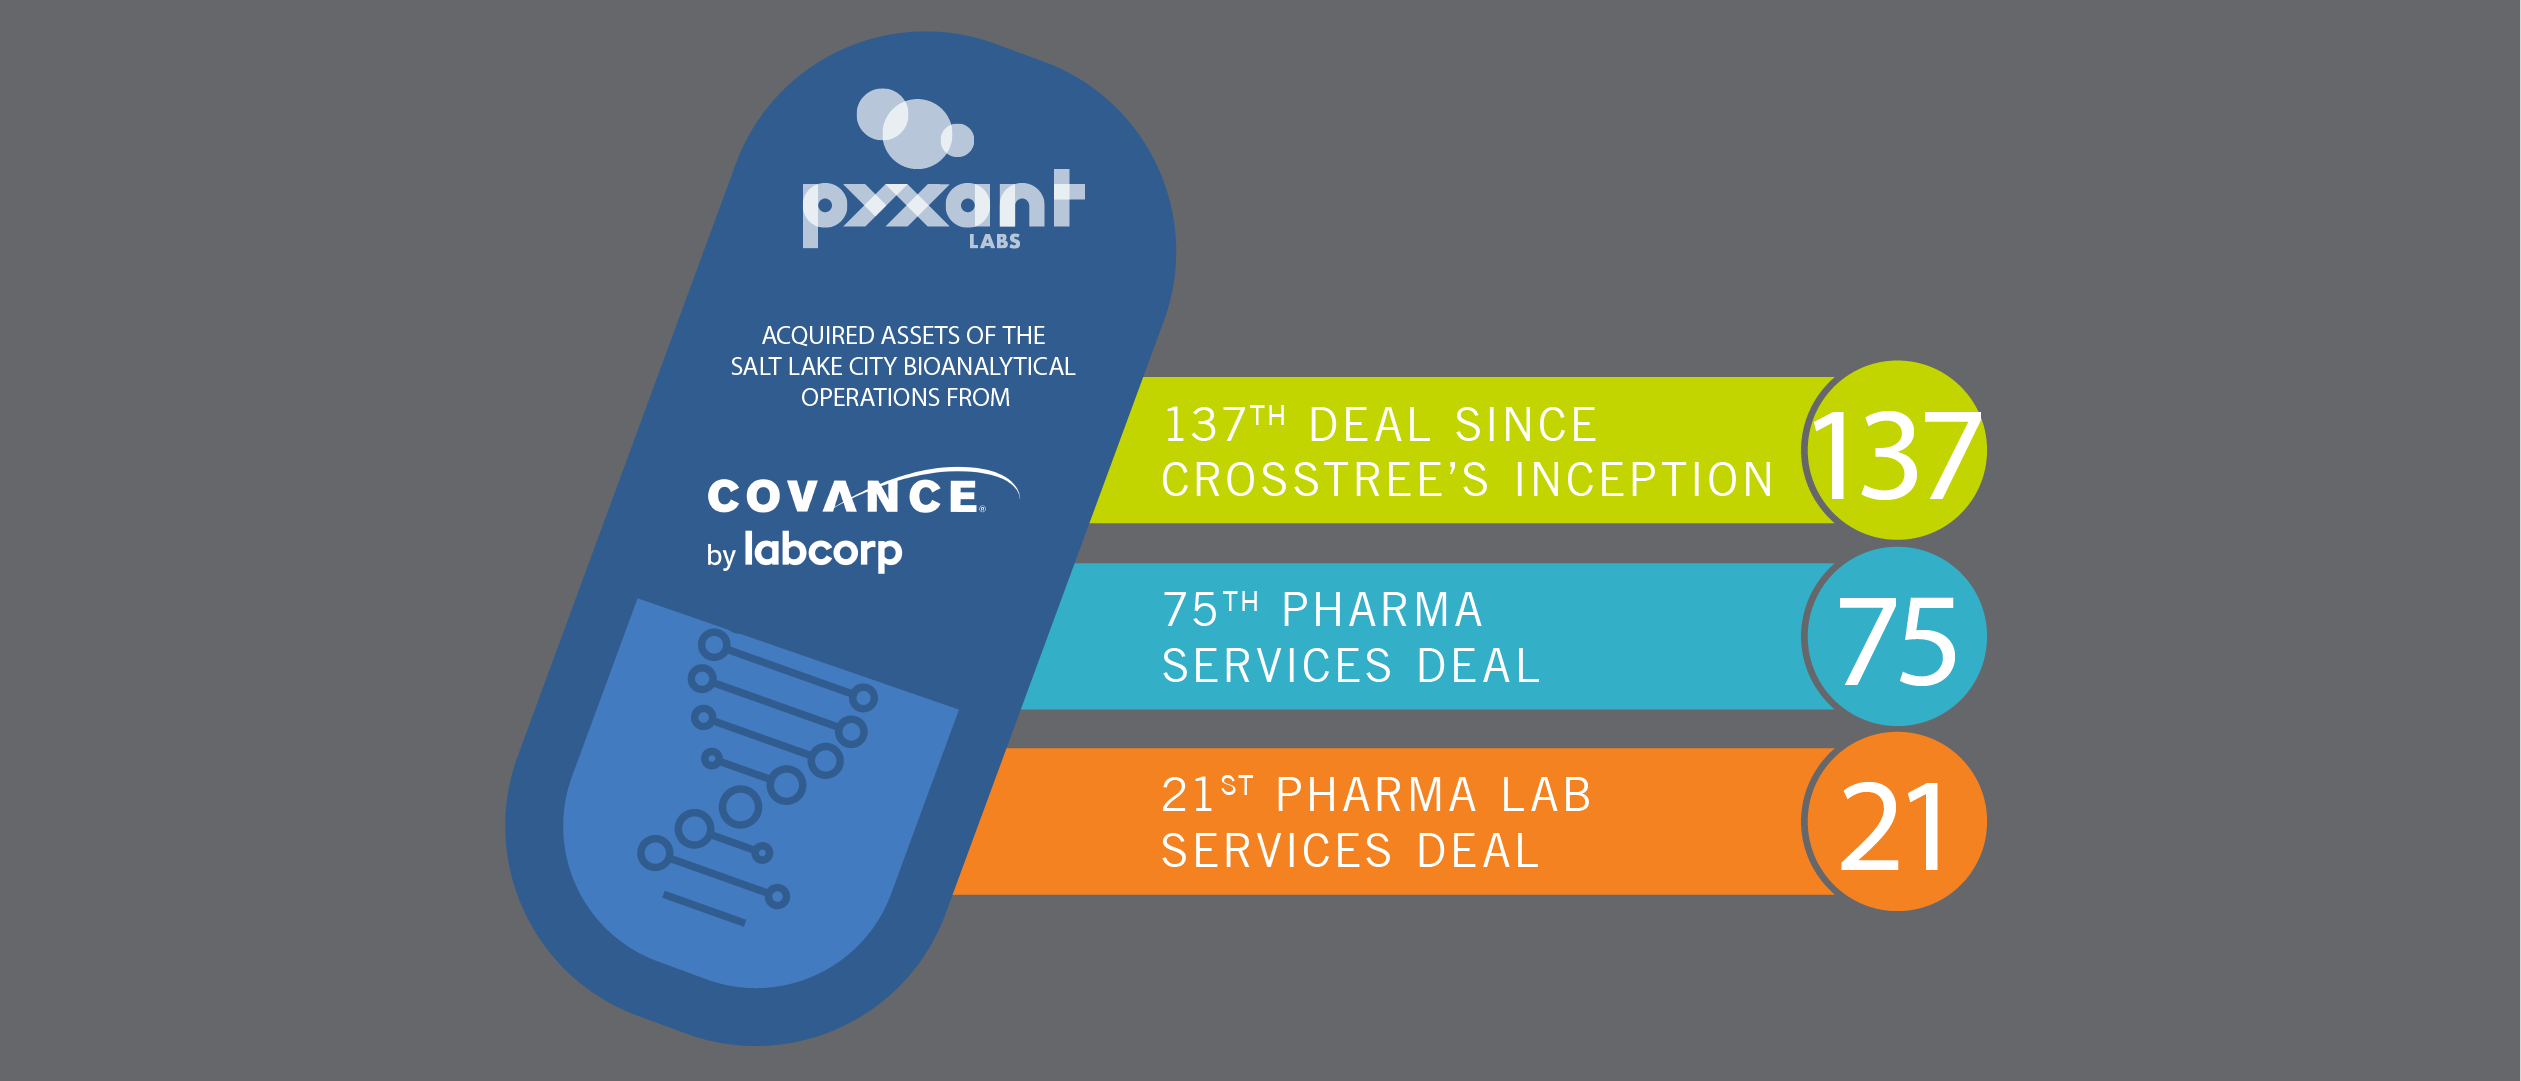 Pyxant Labs Bolsters Capabilities in Acquisition of Covance by Labcorp's SLC Bioanalytical Site